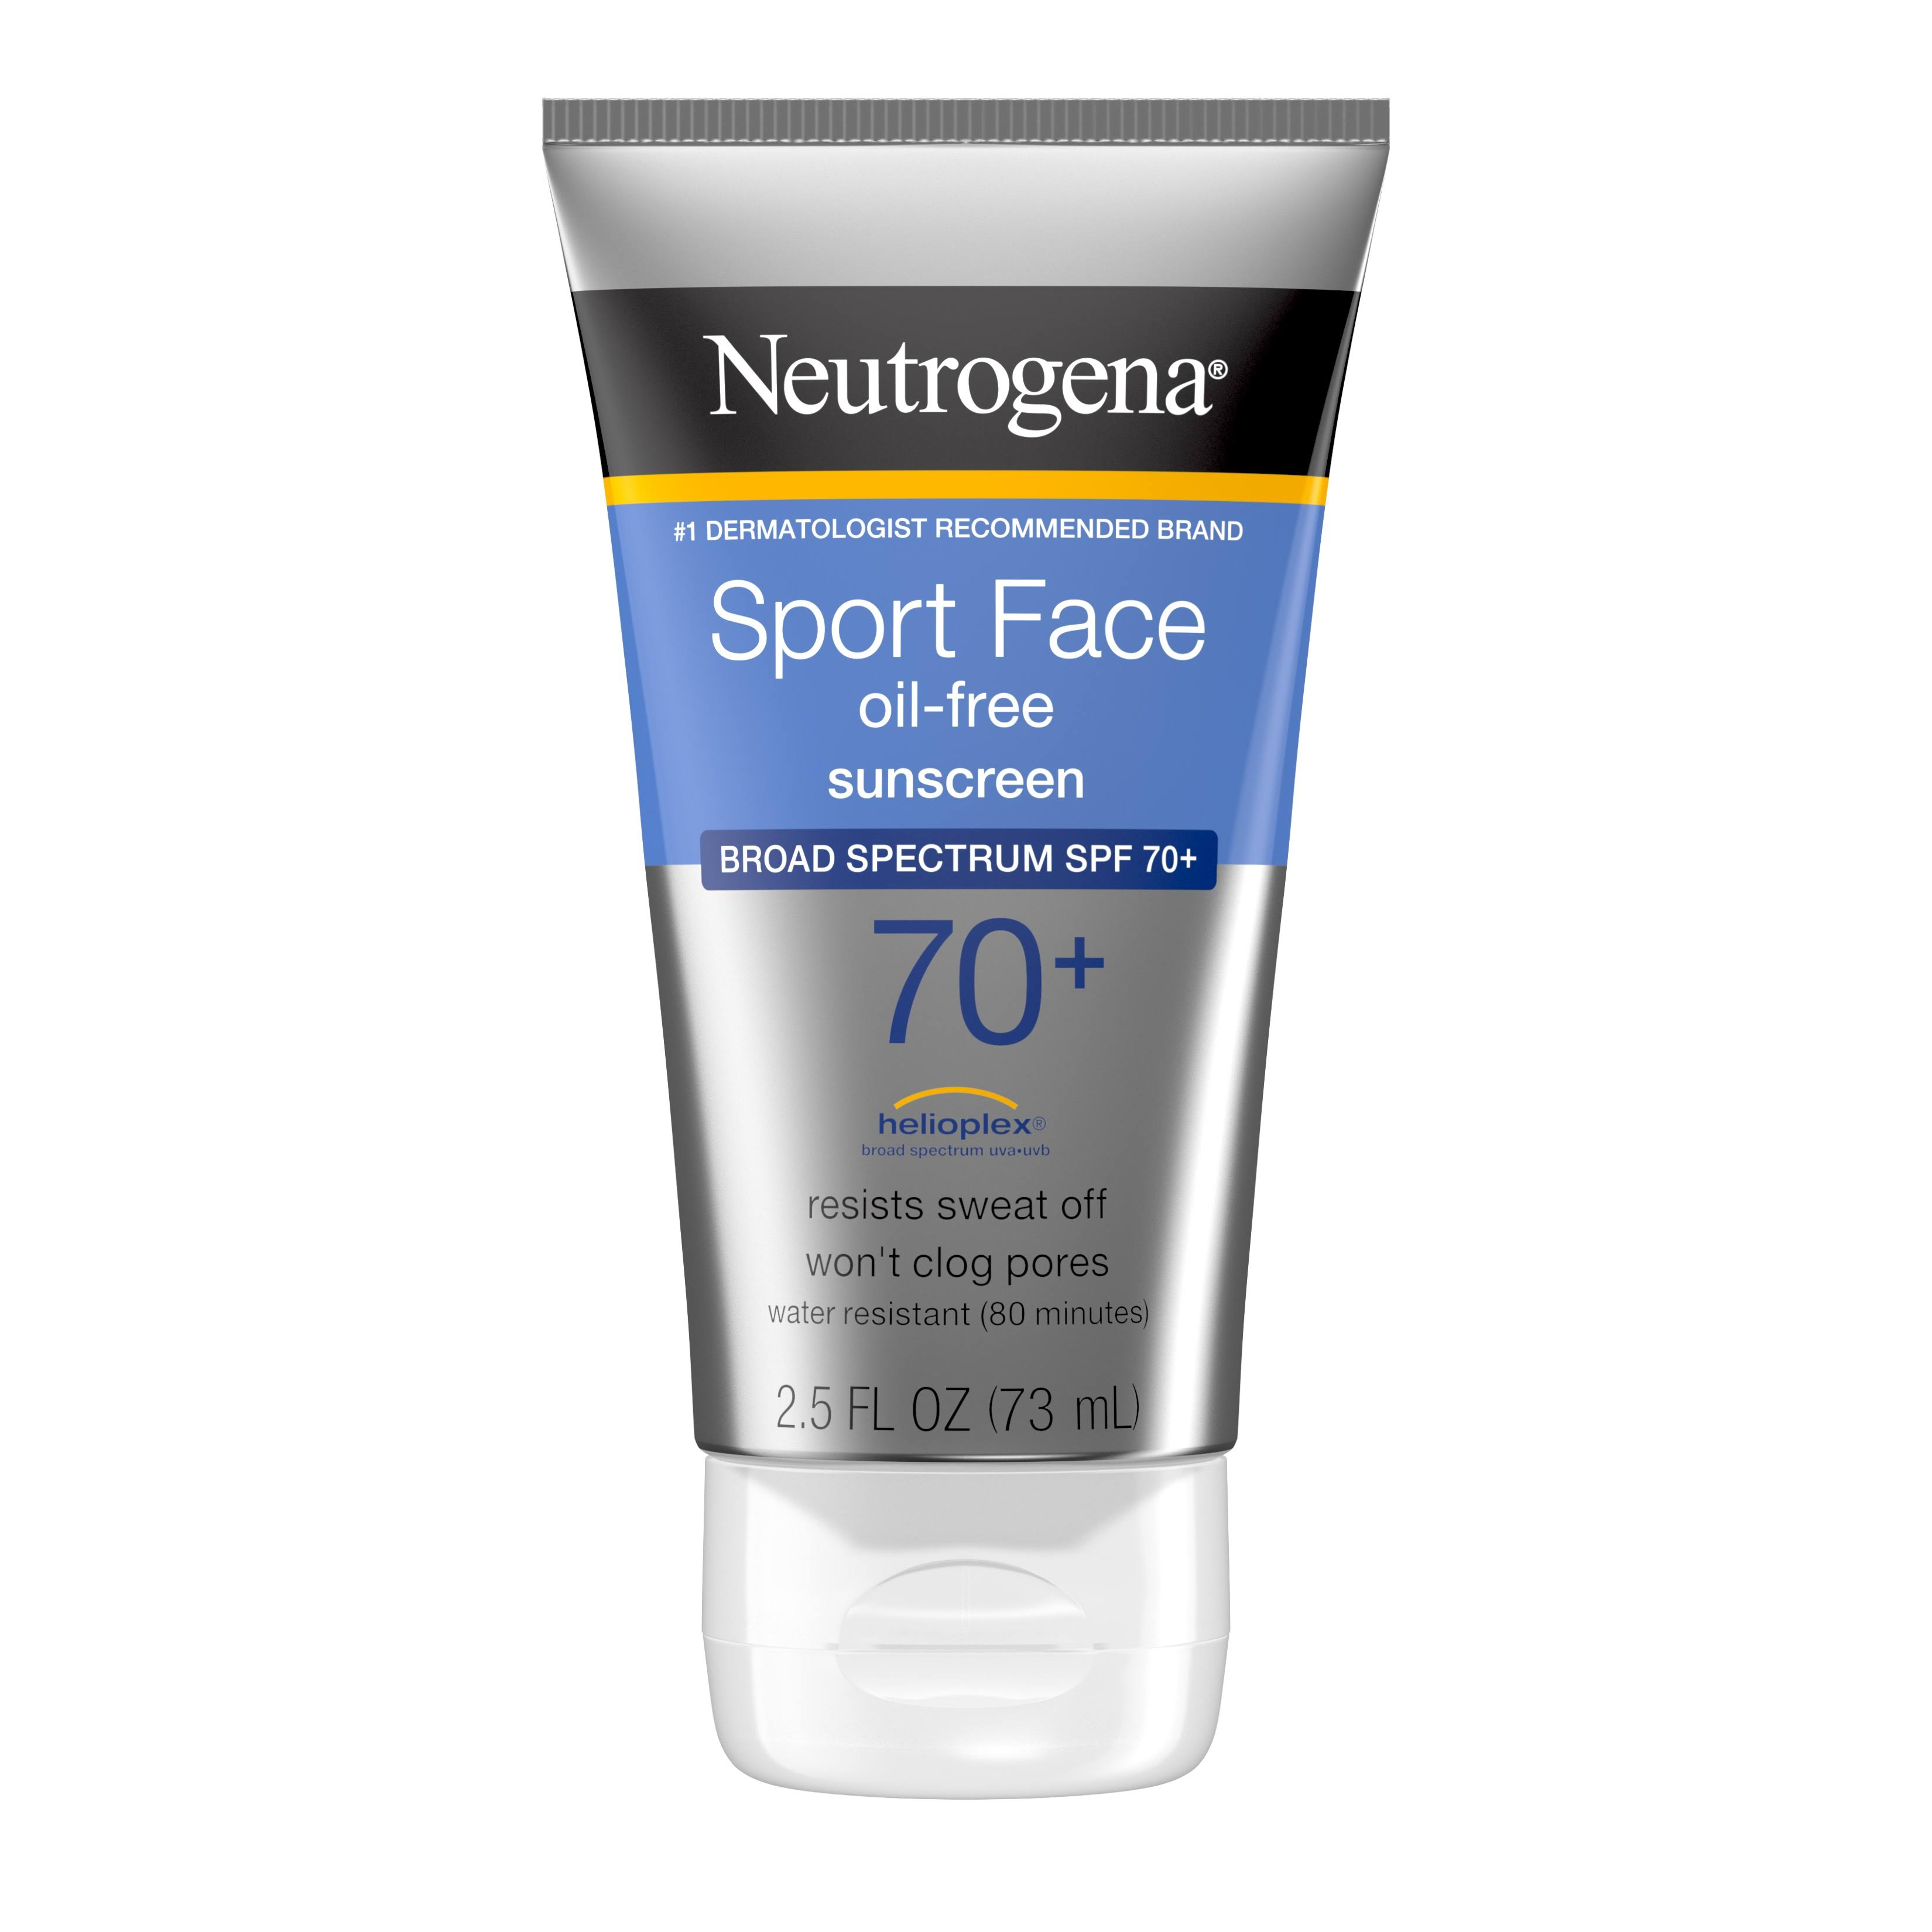 Neutrogena Ultimate Sport Face Sunblock Lotion - SPF 70, 2.5 fl oz, 73 ml, 2 Count